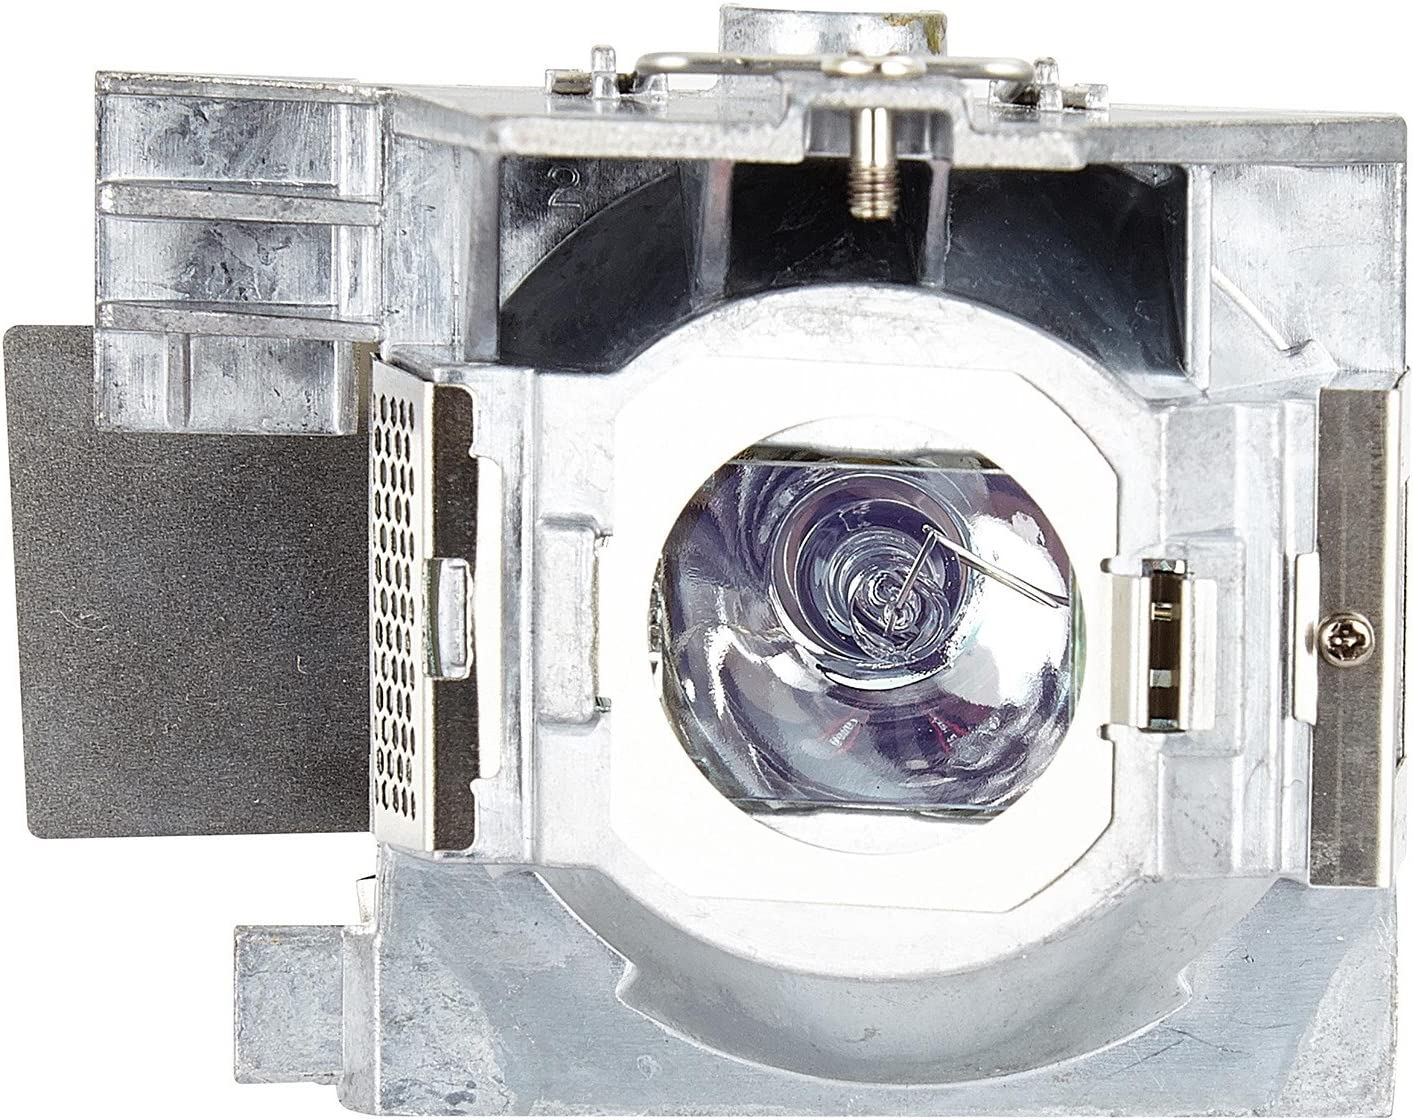 PJD6552LWS Projectors ViewSonic RLC-098 Projector Replacement Lamp for ViewSonic PJD6552LW